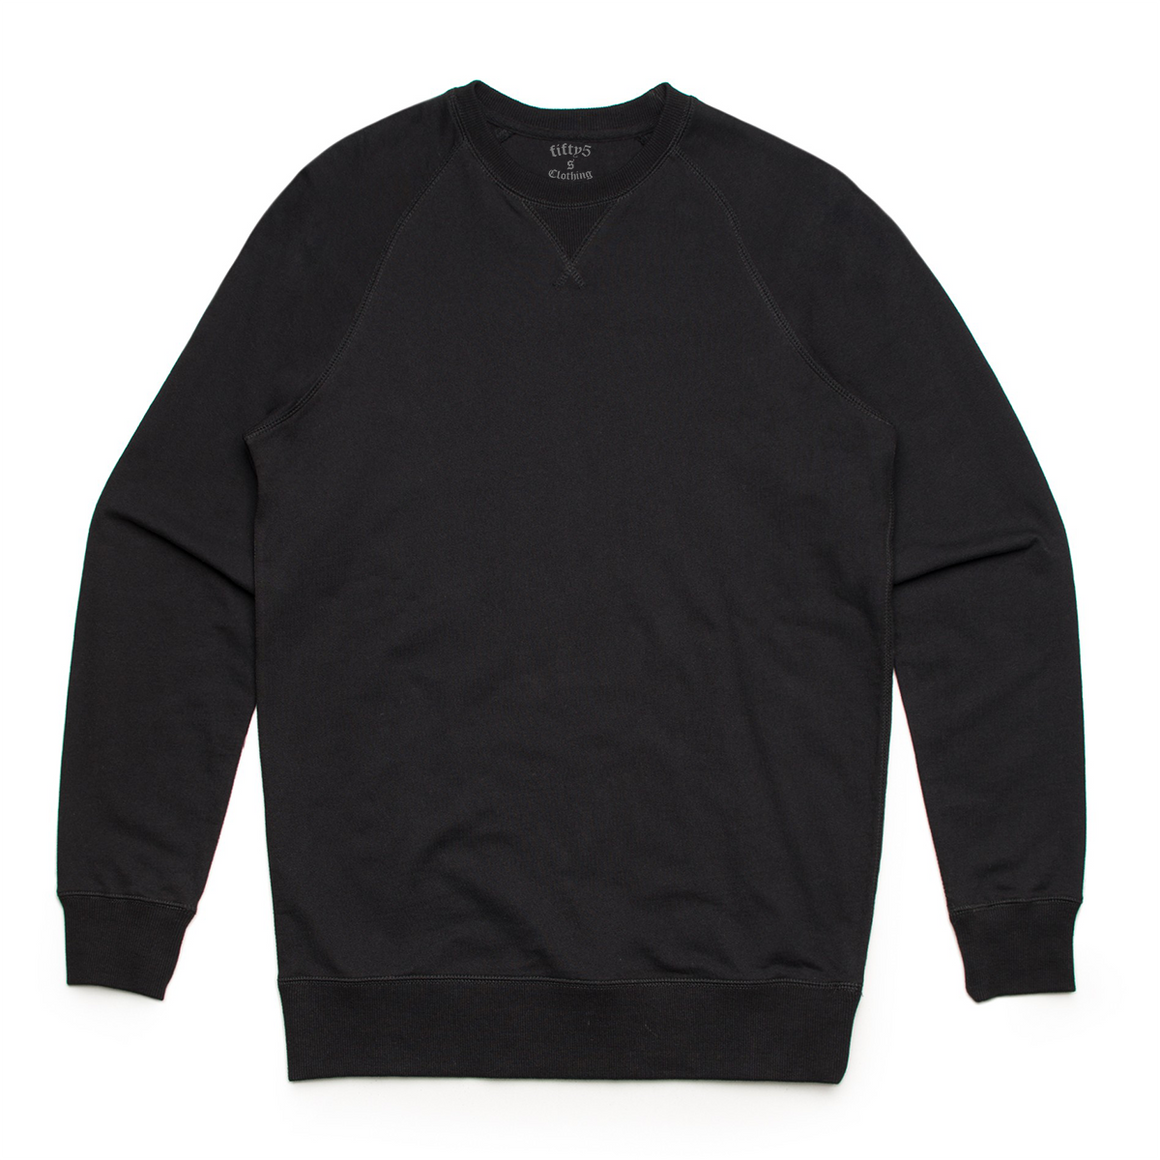 Fifty5 Clothing Premium Brush Crew Sweatshirt